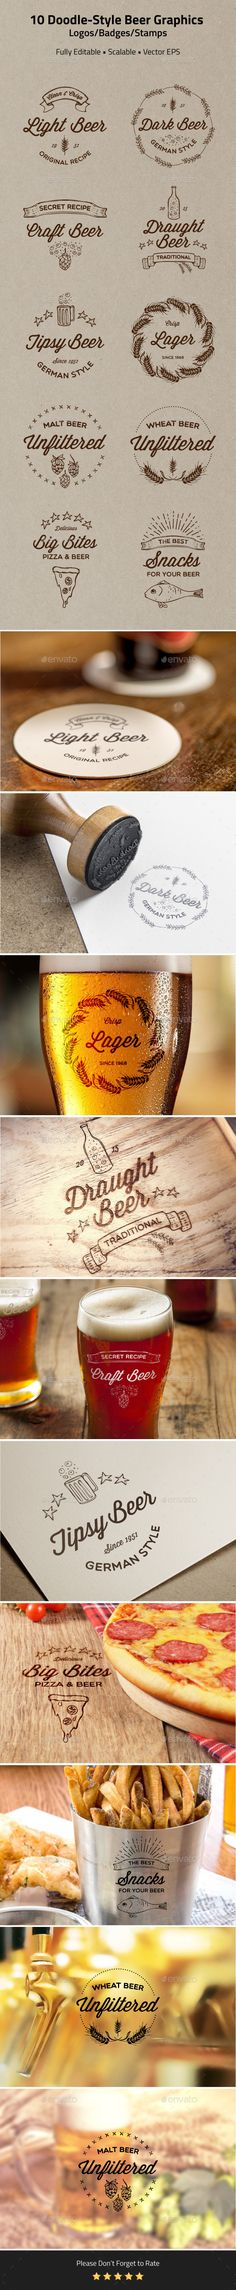 10 Doodle-Style Beer Badges, Logos, Stamps